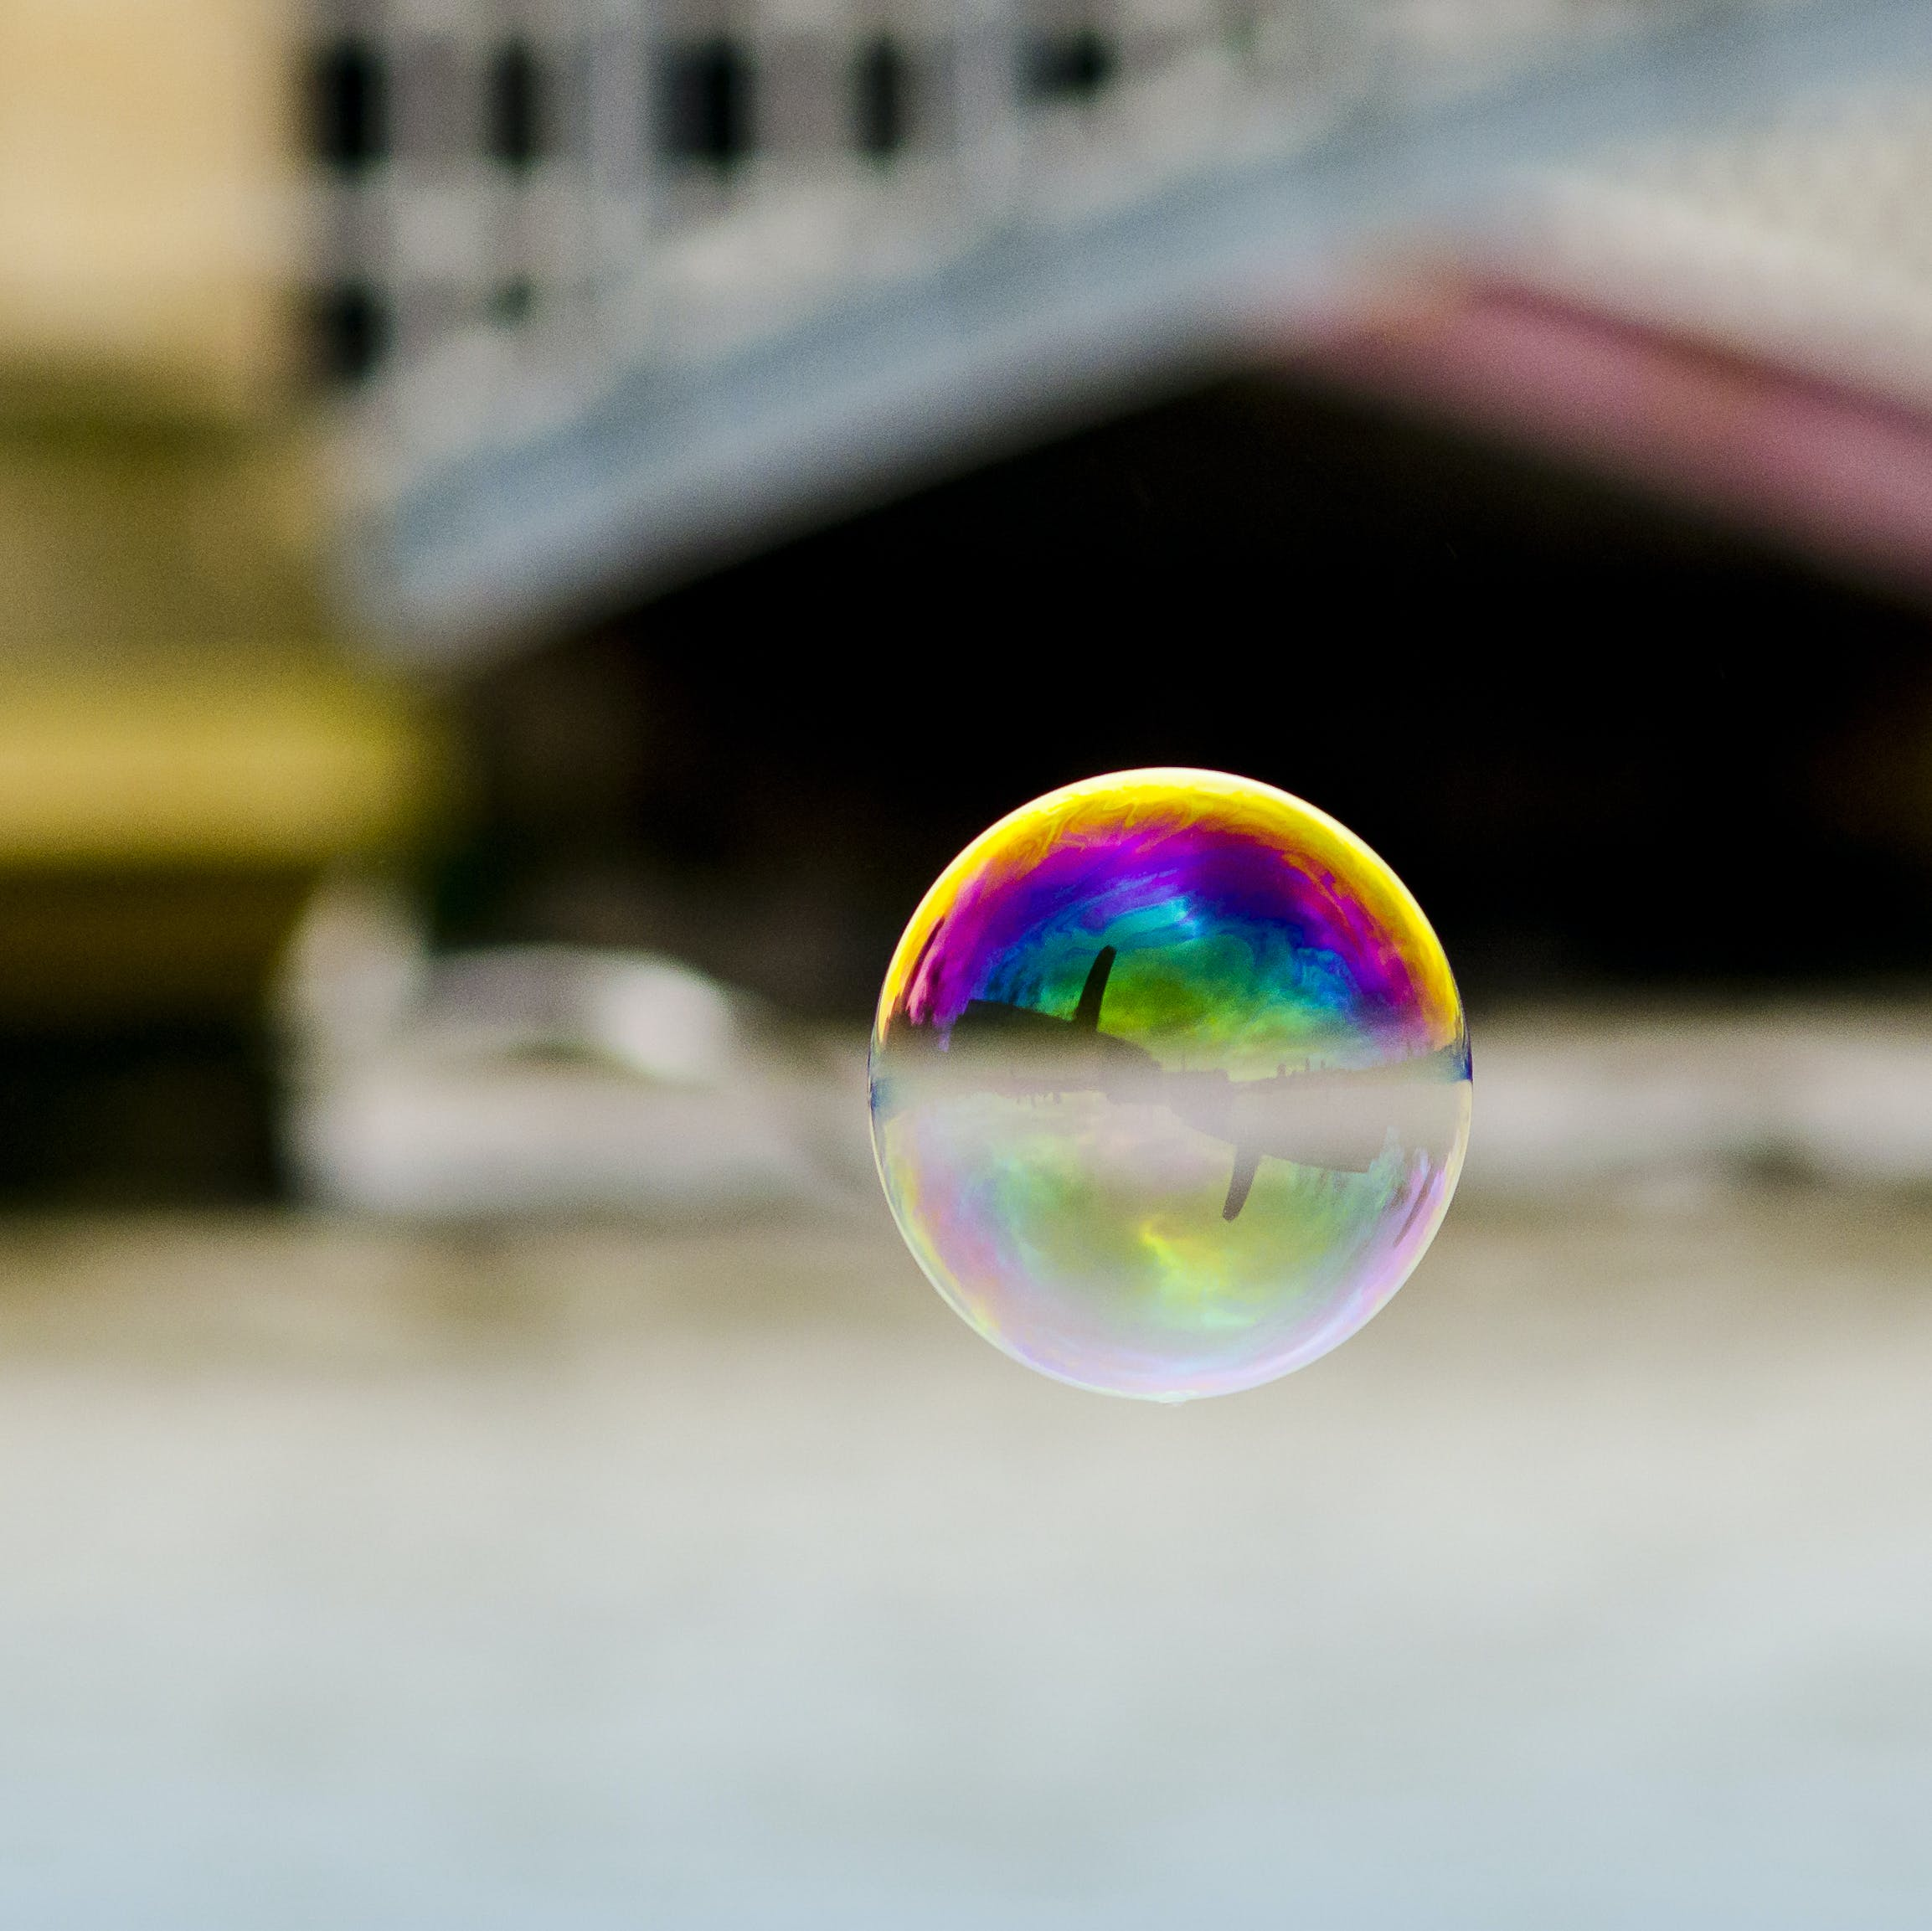 Free stock photo of bubble, floating, london, reflection